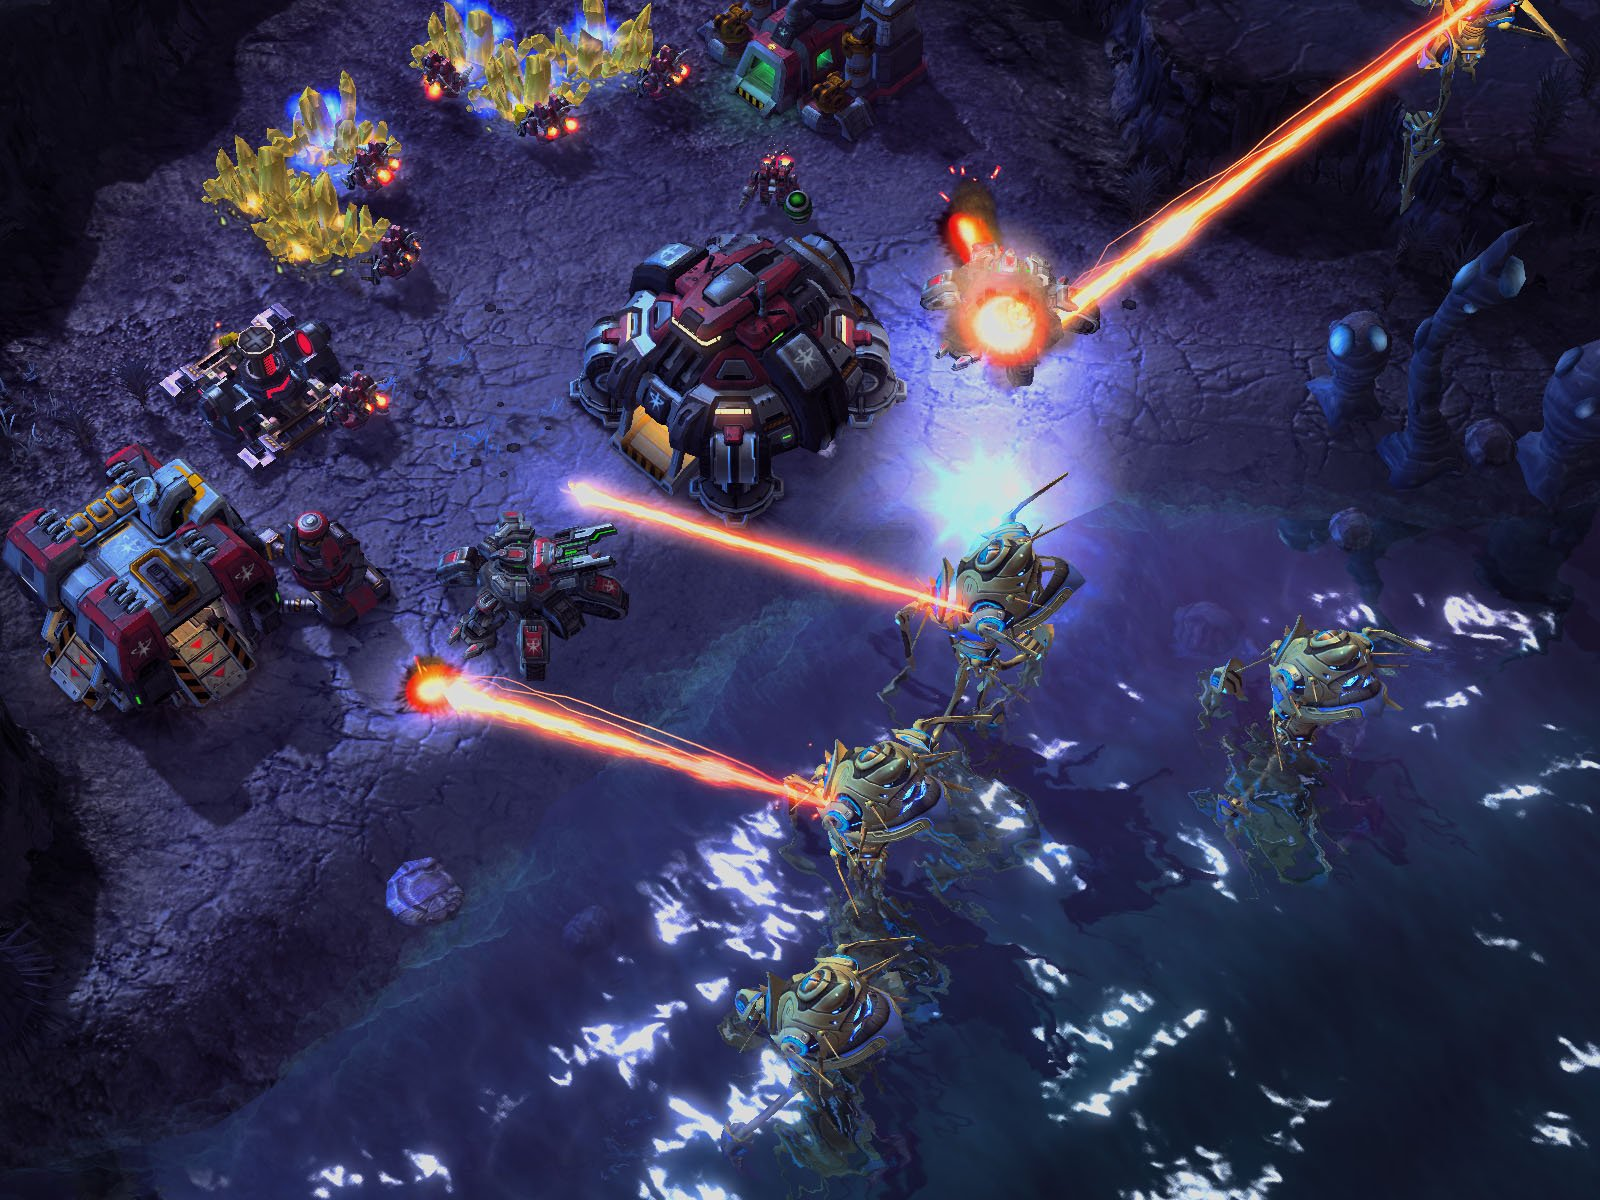 Starcraft II: Wings of Liberty Collector's Edition - PC by Blizzard Entertainment (Image #3)